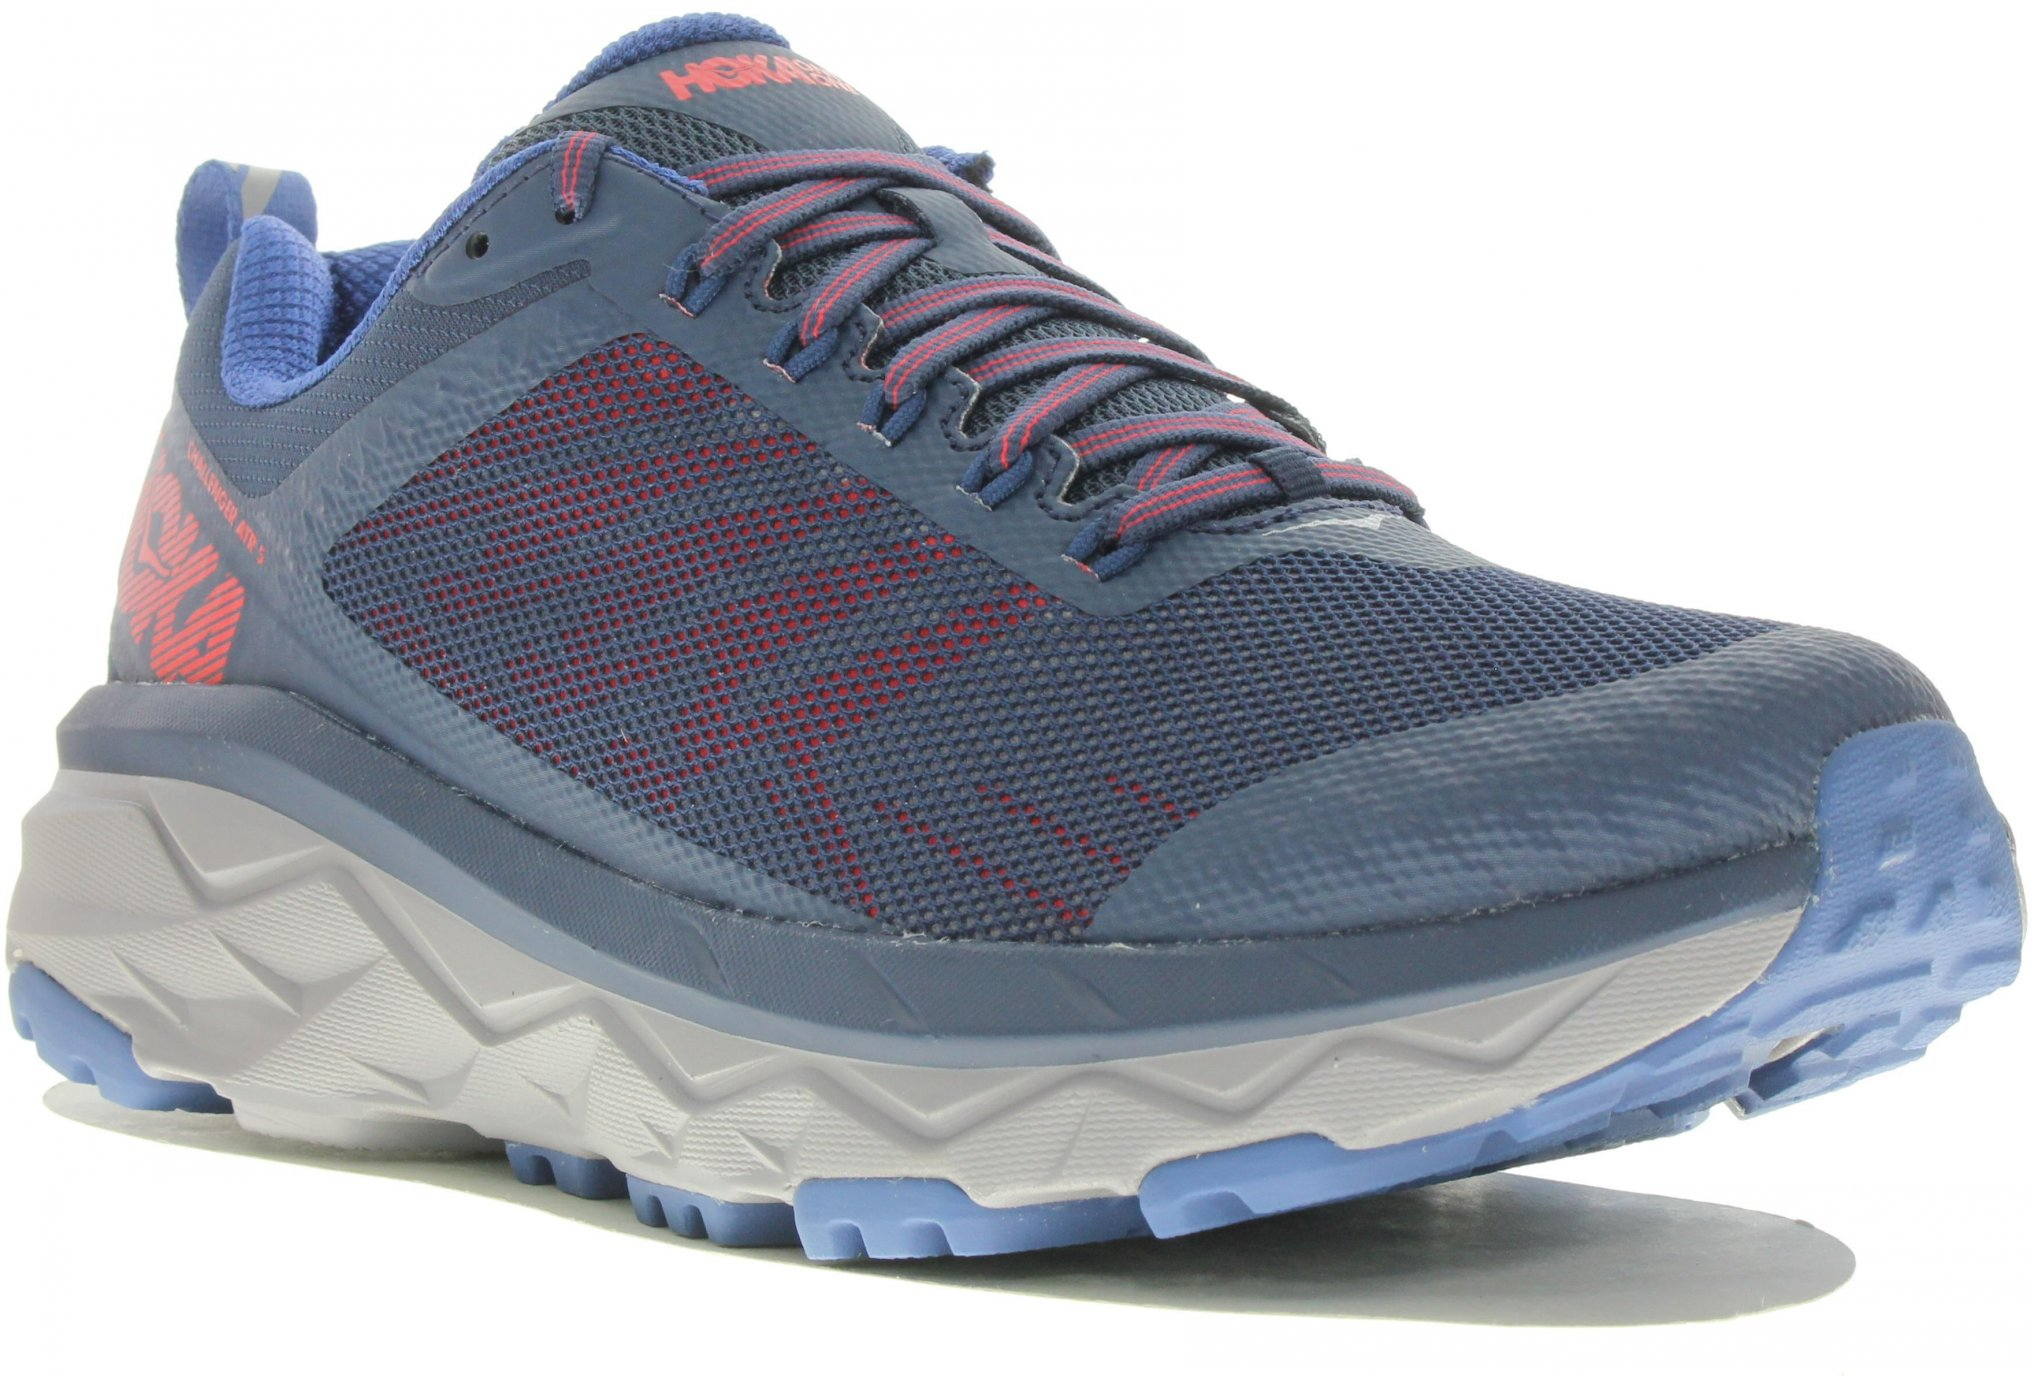 Hoka One One Challenger ATR 5 Wide Chaussures homme